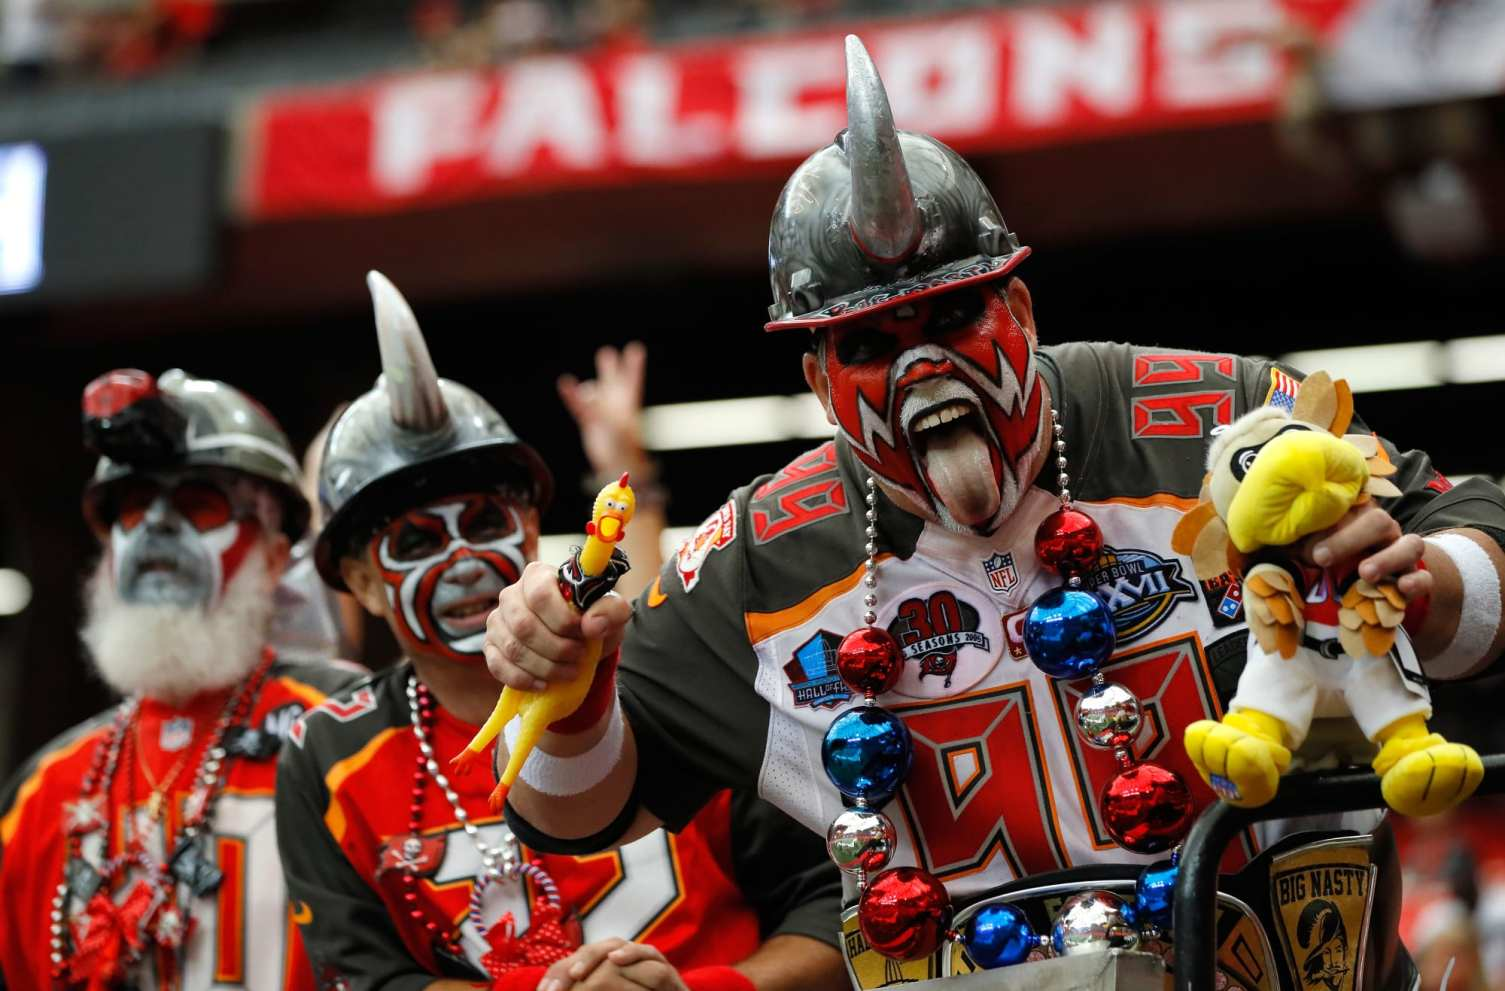 Tampa Bay Buccaneers fan base ranked ninth worst in the NFL